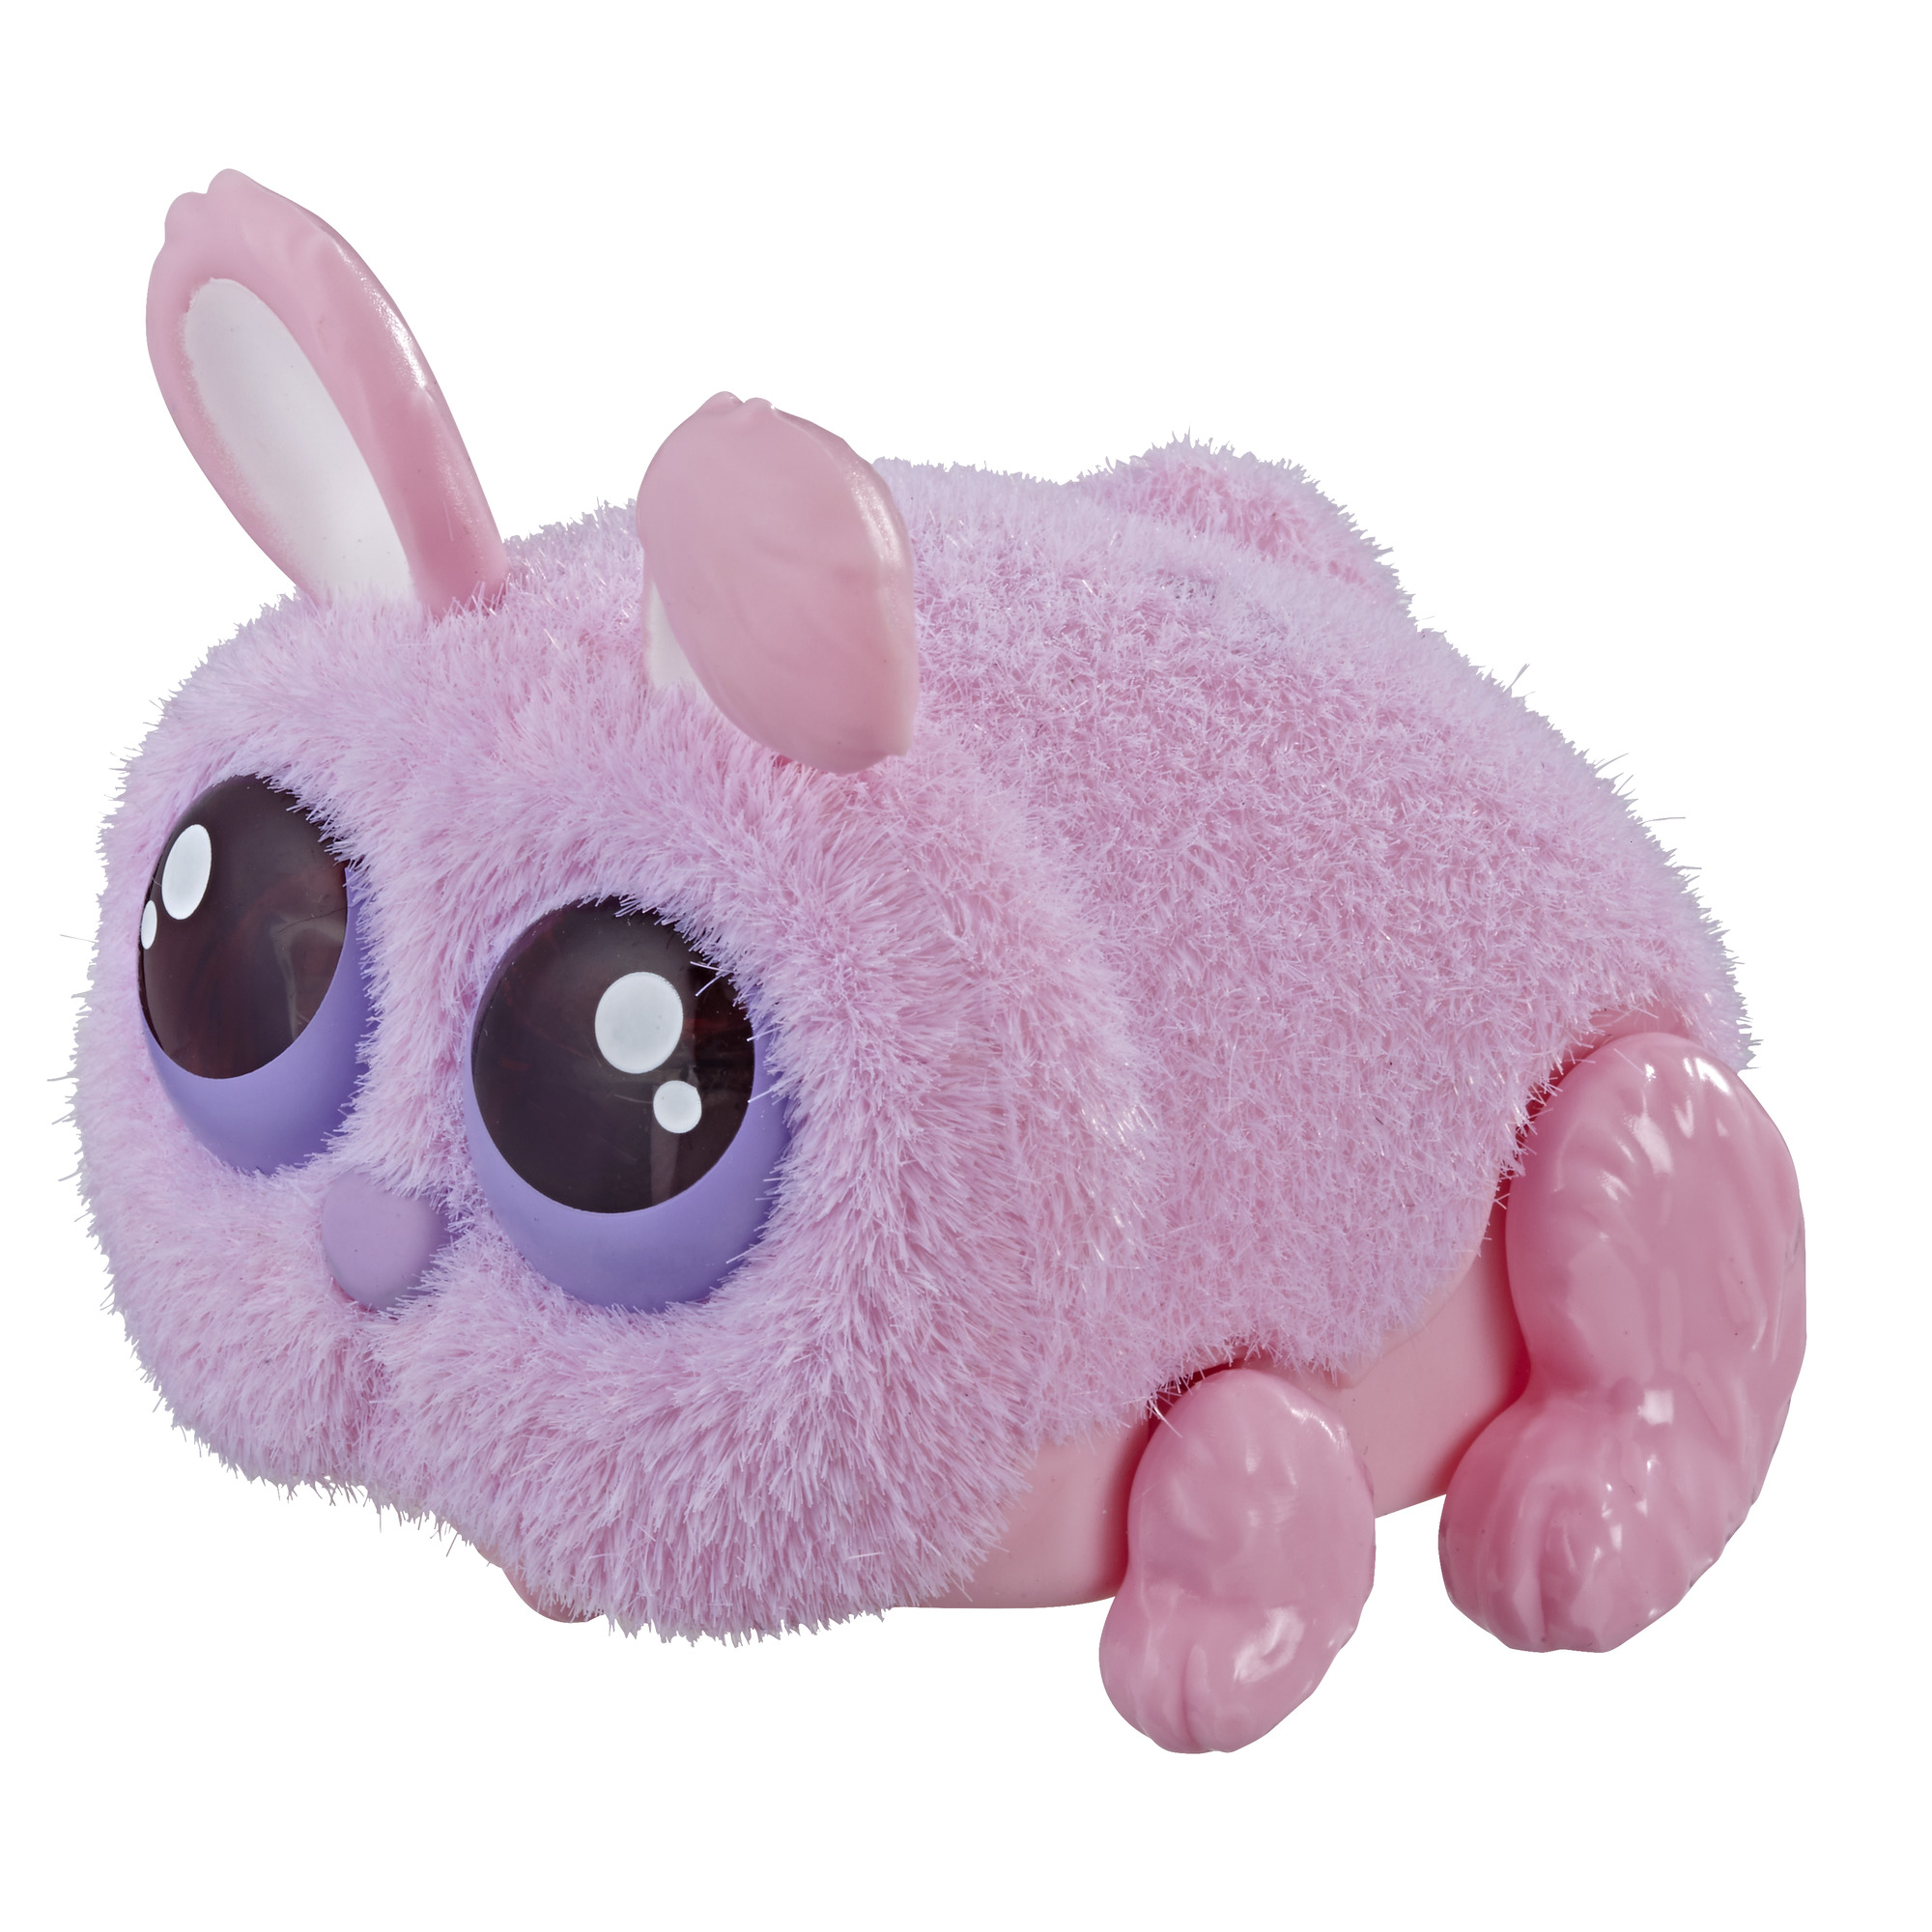 Yellies! Biscuit Bun Voice-Activated Bunny Pet Toy For Kids Ages 5 And Up